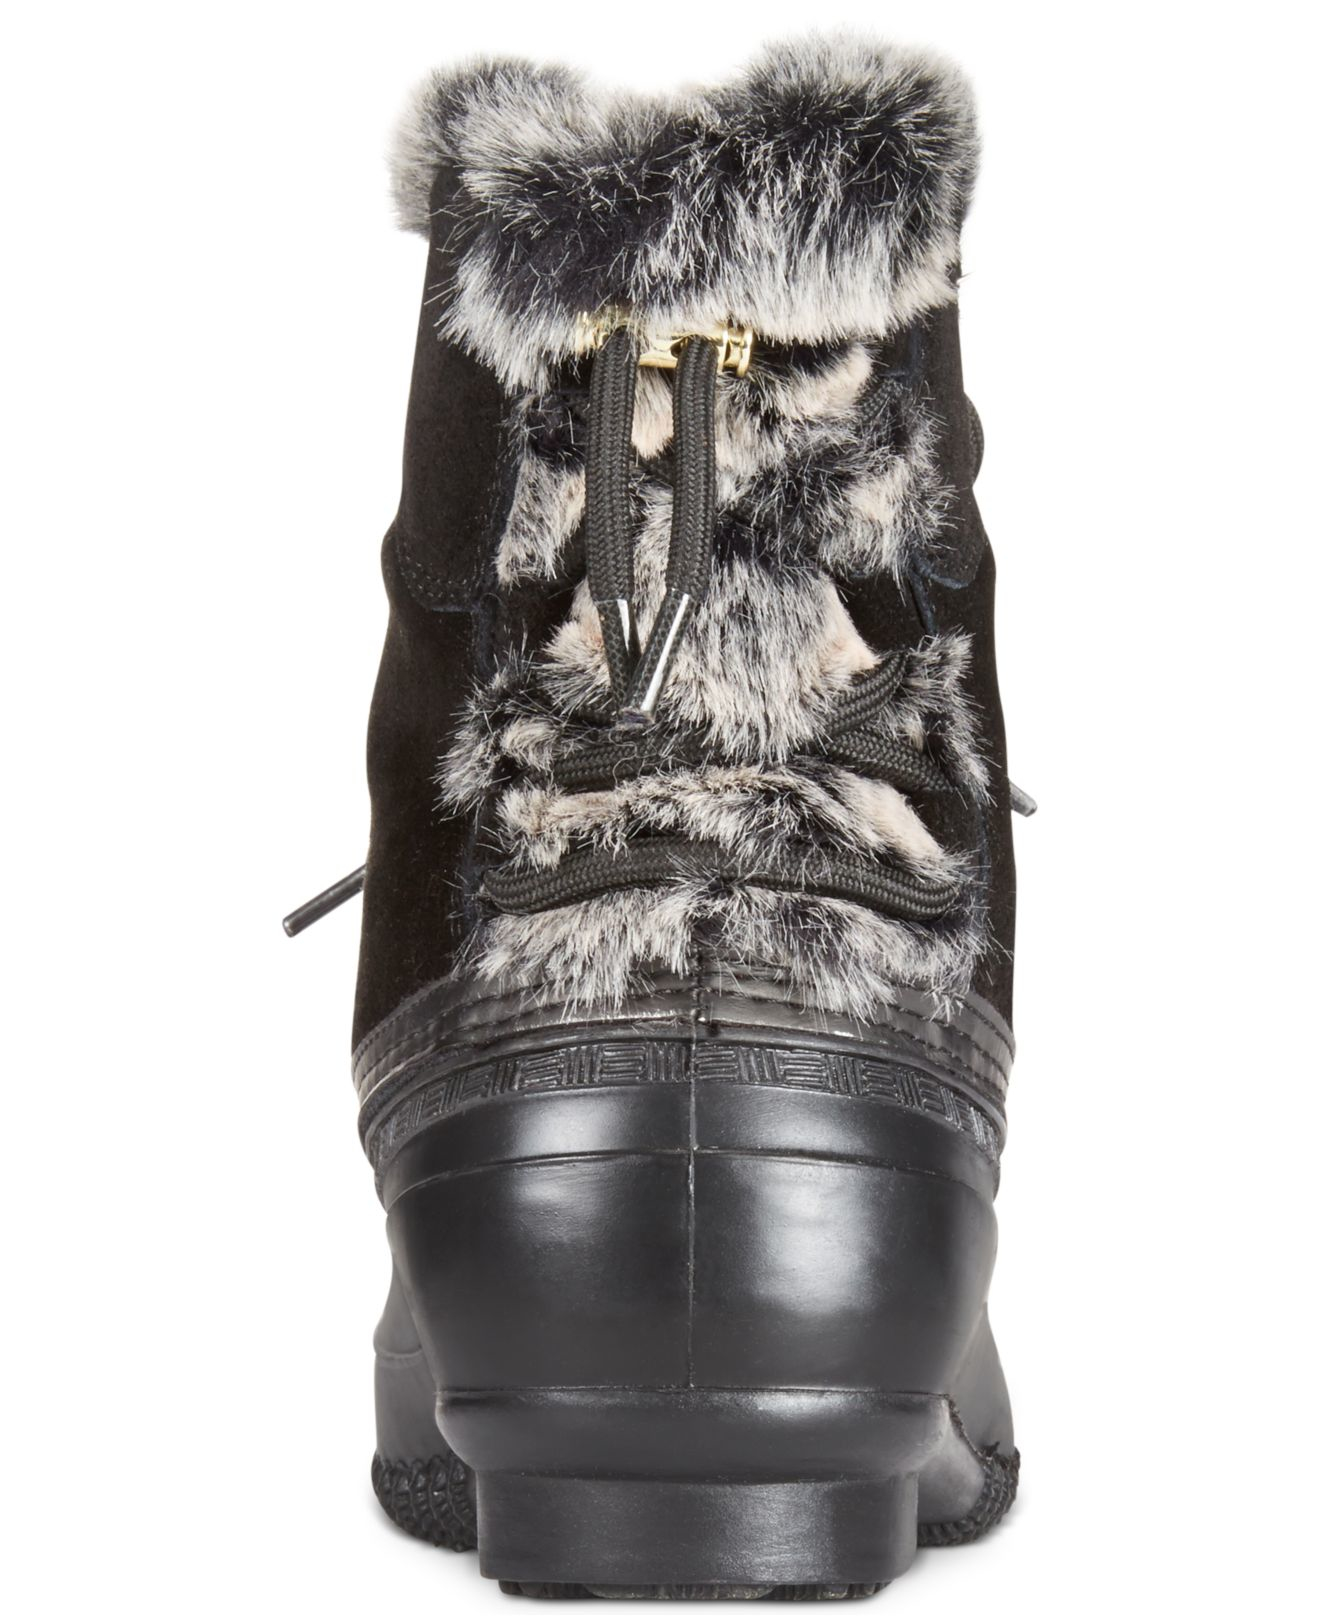 4c05f95f6804a2 Lyst - Tommy Hilfiger Rellenna Cold Weather Boots in Black